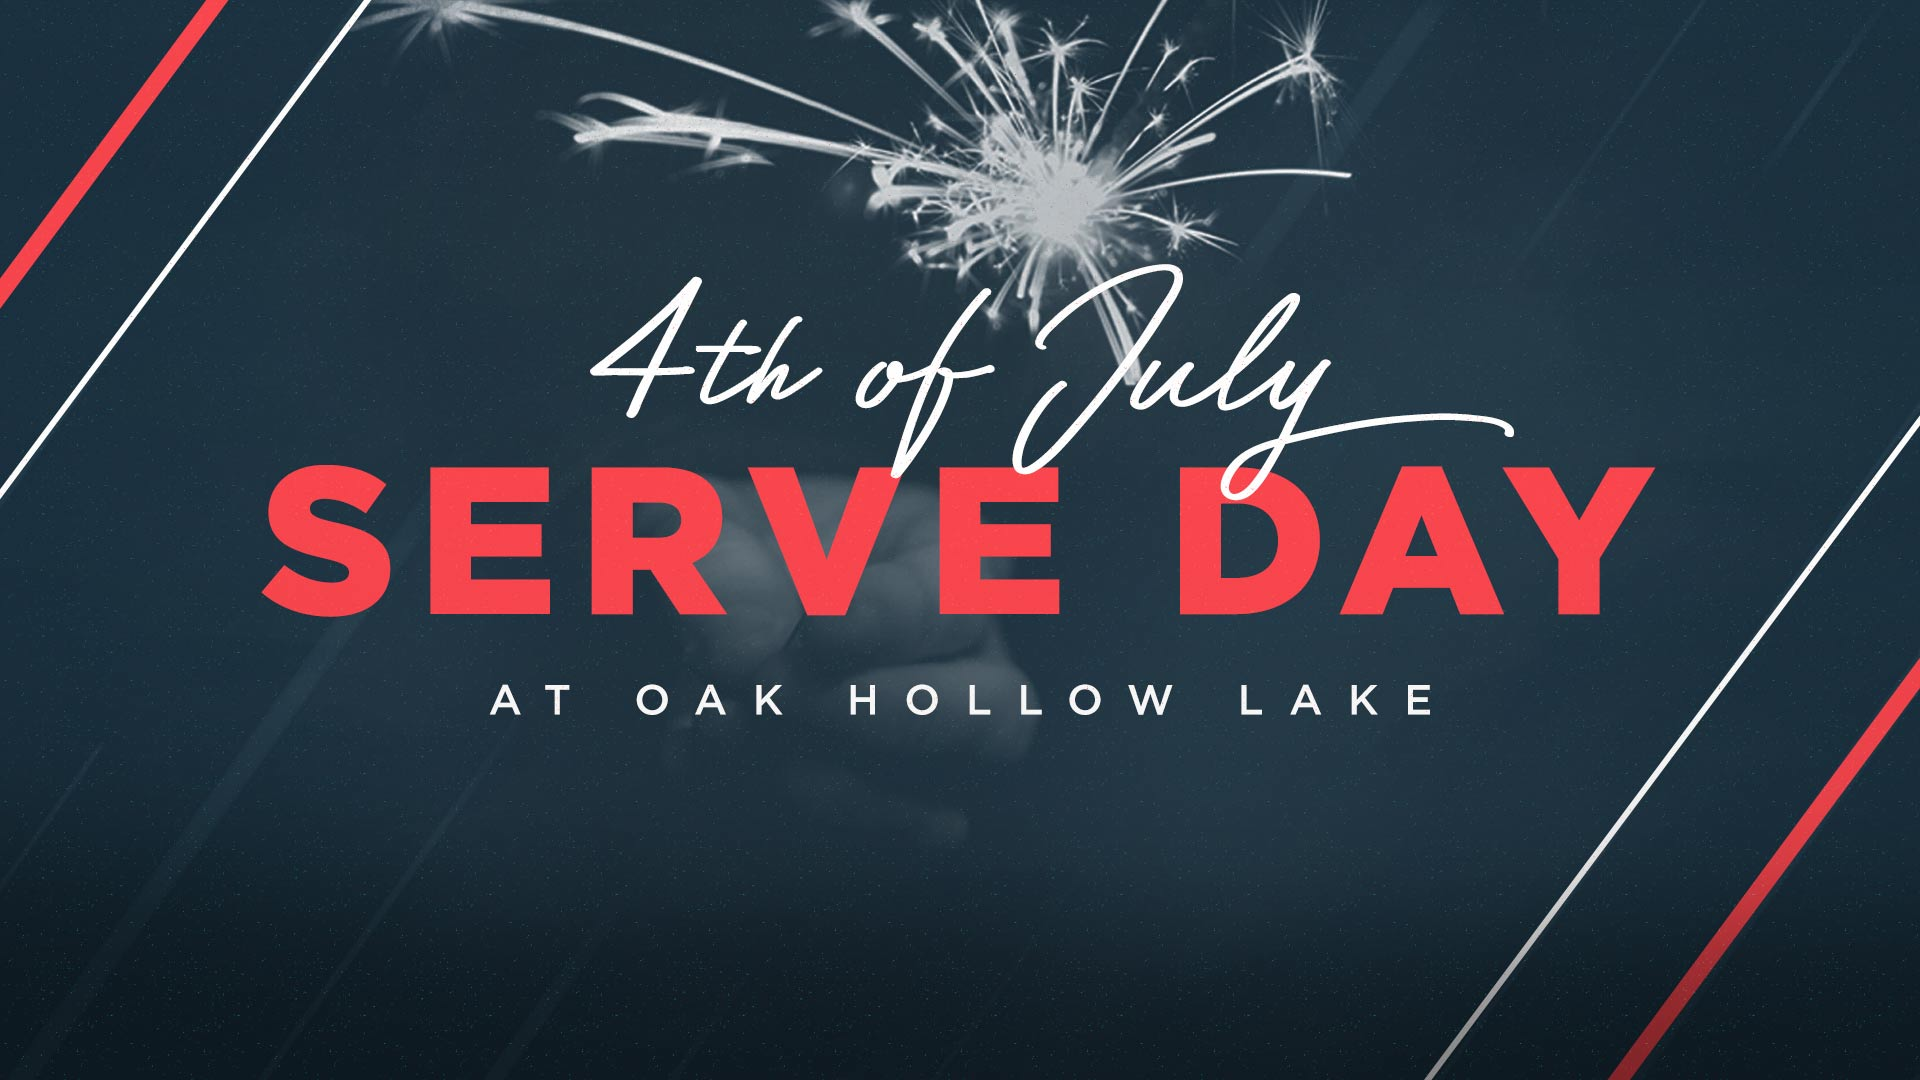 4th of July Serve Day